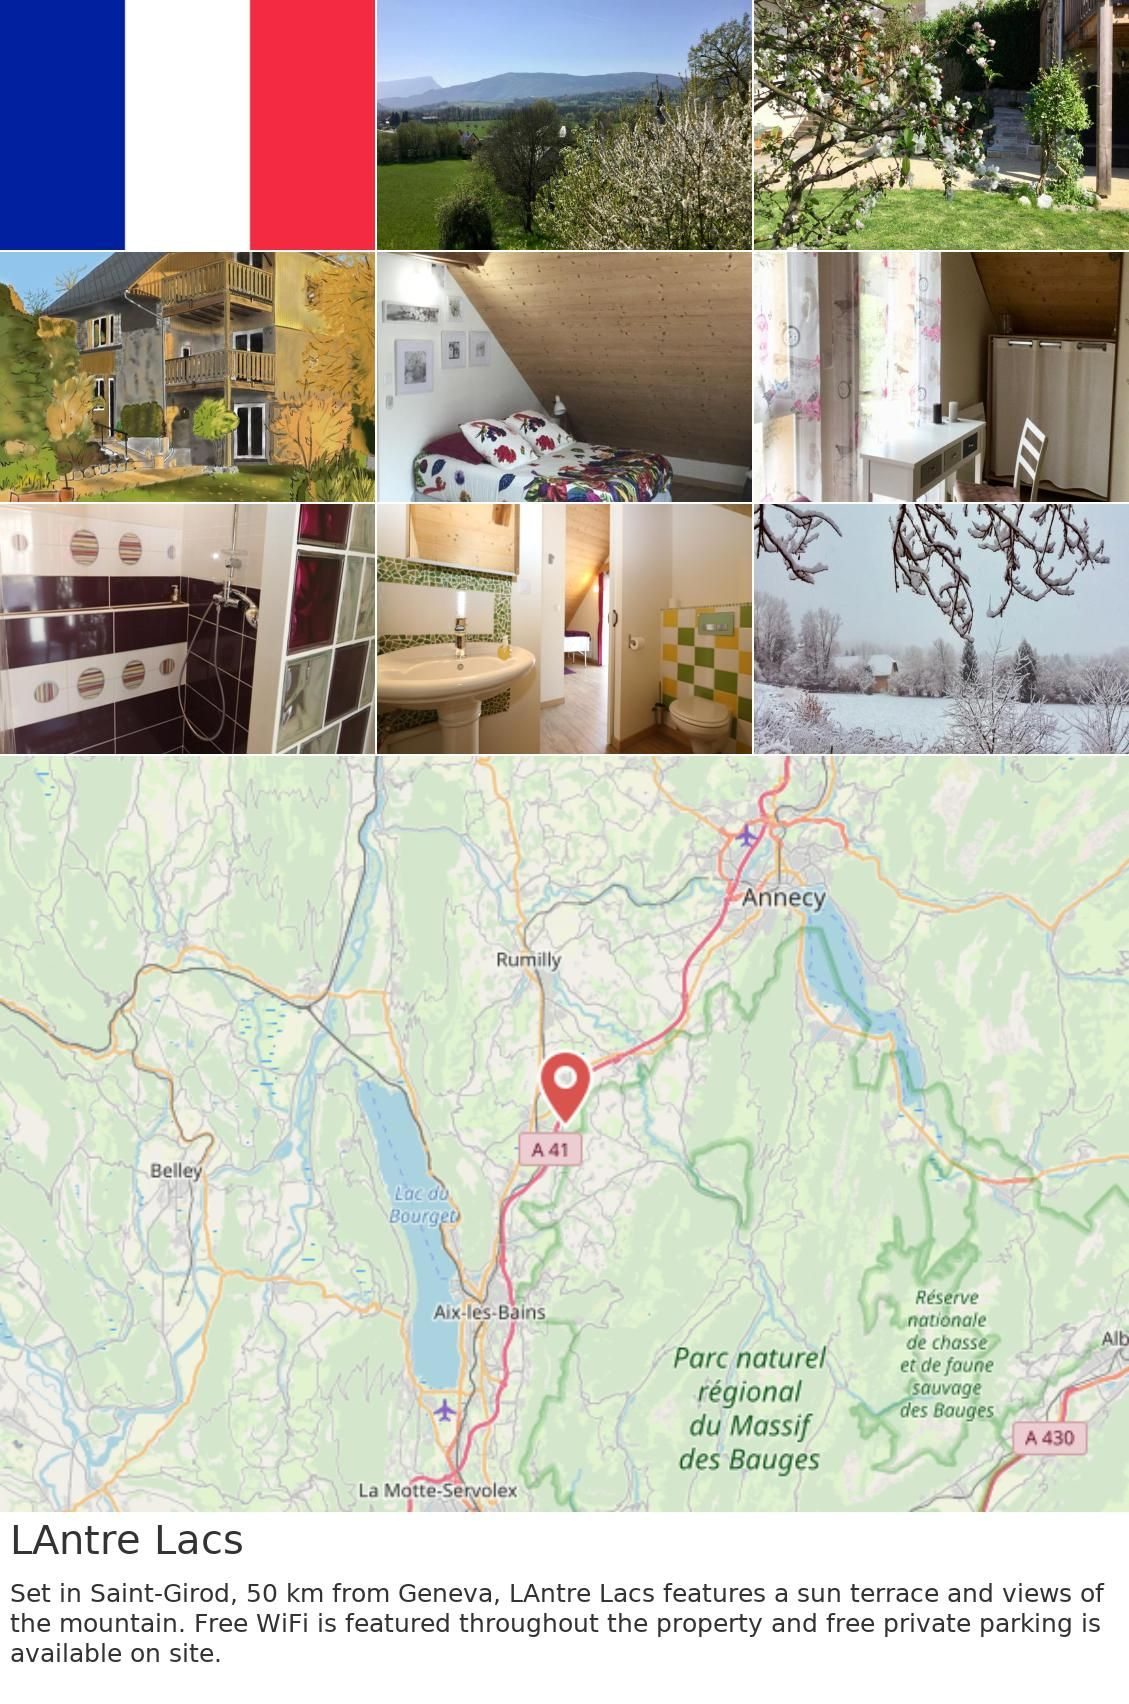 Europe France Saint Girod Lantre Lacs Set In Saint Girod 50 Km From Geneva L Antre Lacs Features A Sun Terrace And Views Of The Mountain Free Wifi Is Fea